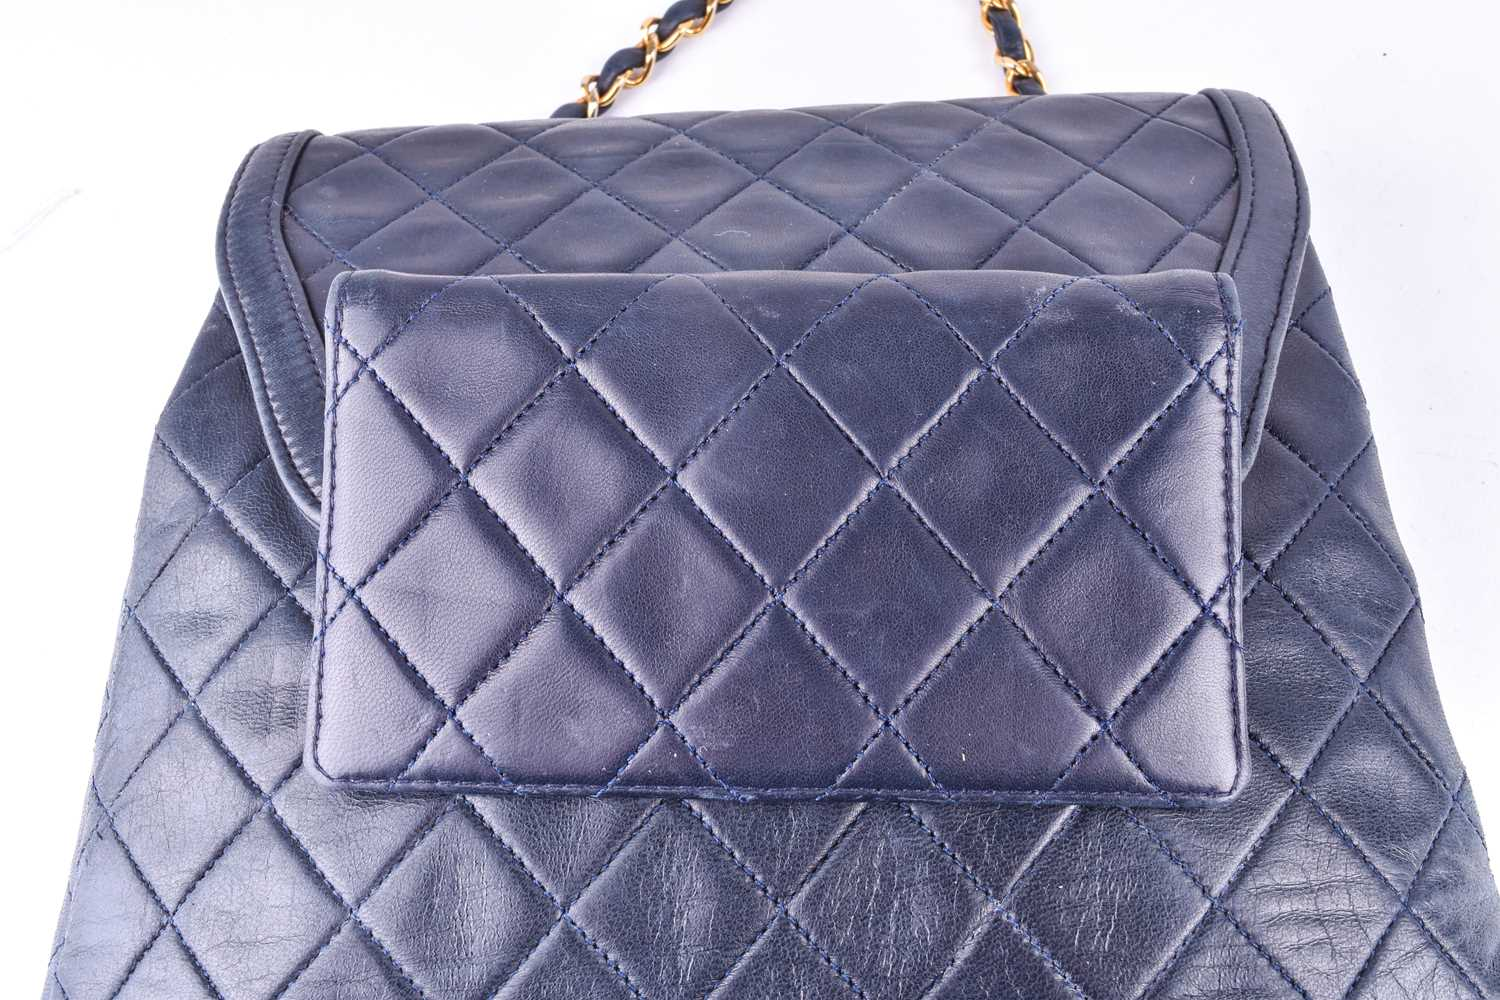 Chanel. A classic quilted leather handbag, of tapered square design, with gold tone CC logo clasp, - Image 8 of 26